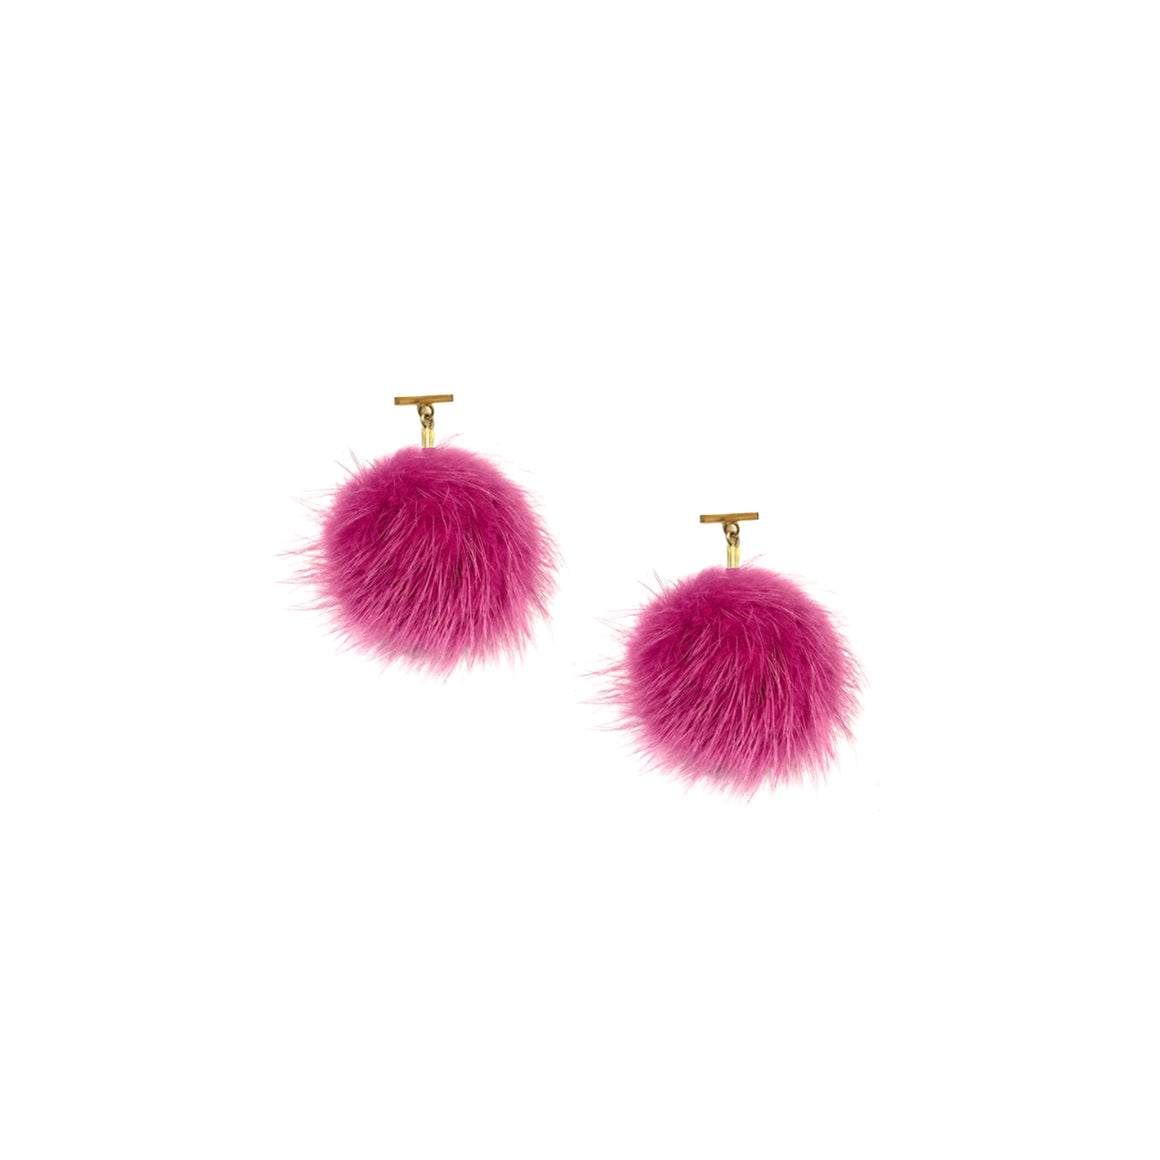 Fuchsia Mink Pom Pom T Stud Earrings, Earrings, Tuleste, Tuleste